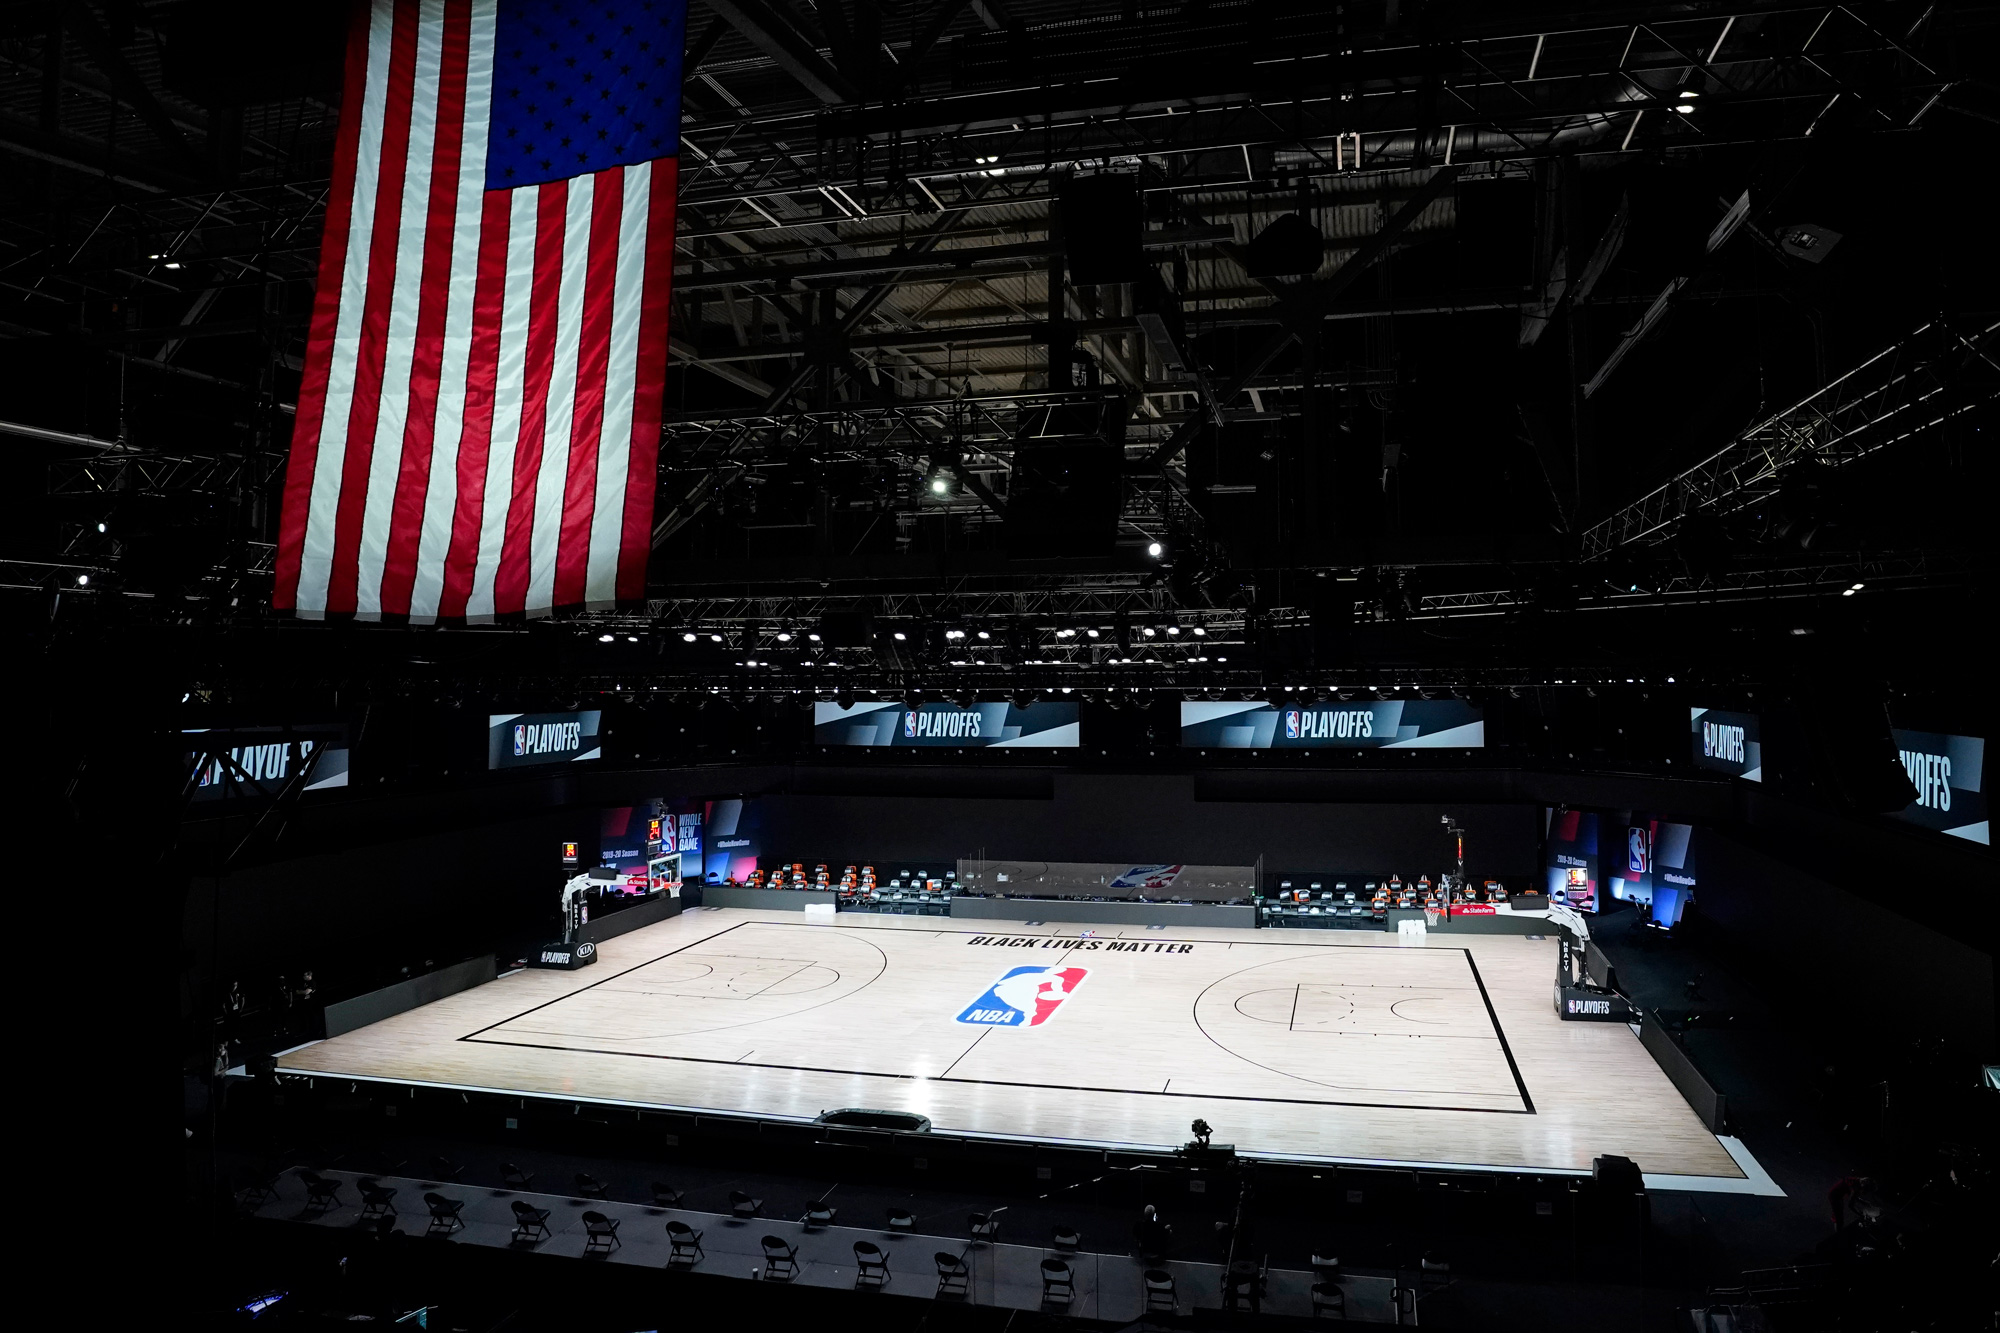 The court sits empty after a postponed NBA basketball first round playoff game between the Milwaukee Bucks and the Orlando Magic on August 26 in Lake Buena Vista, Florida.